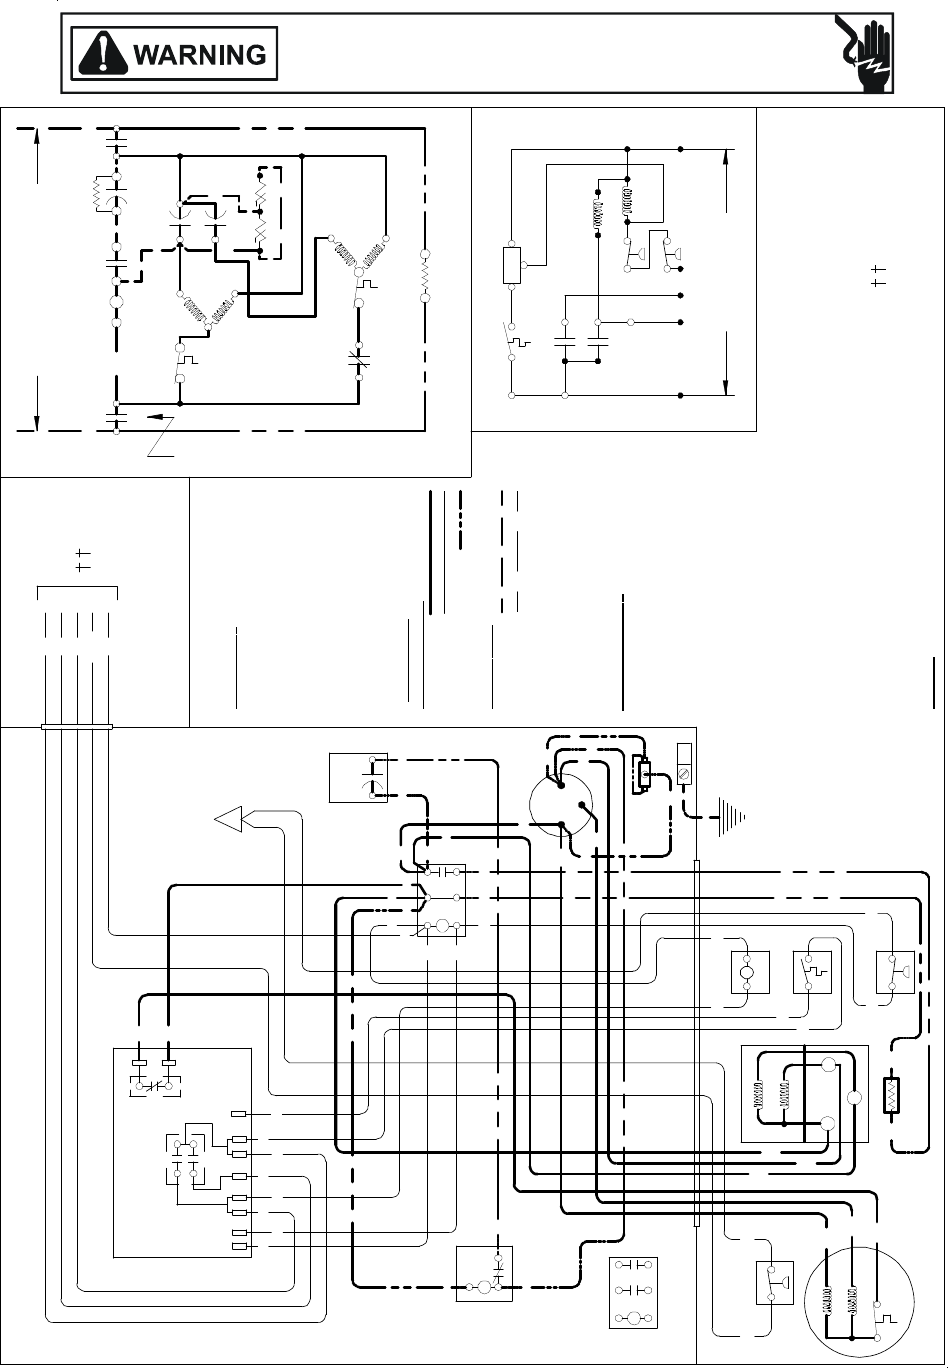 american standard air conditioner wiring diagram images air goodman heat pump wiring diagram get image about